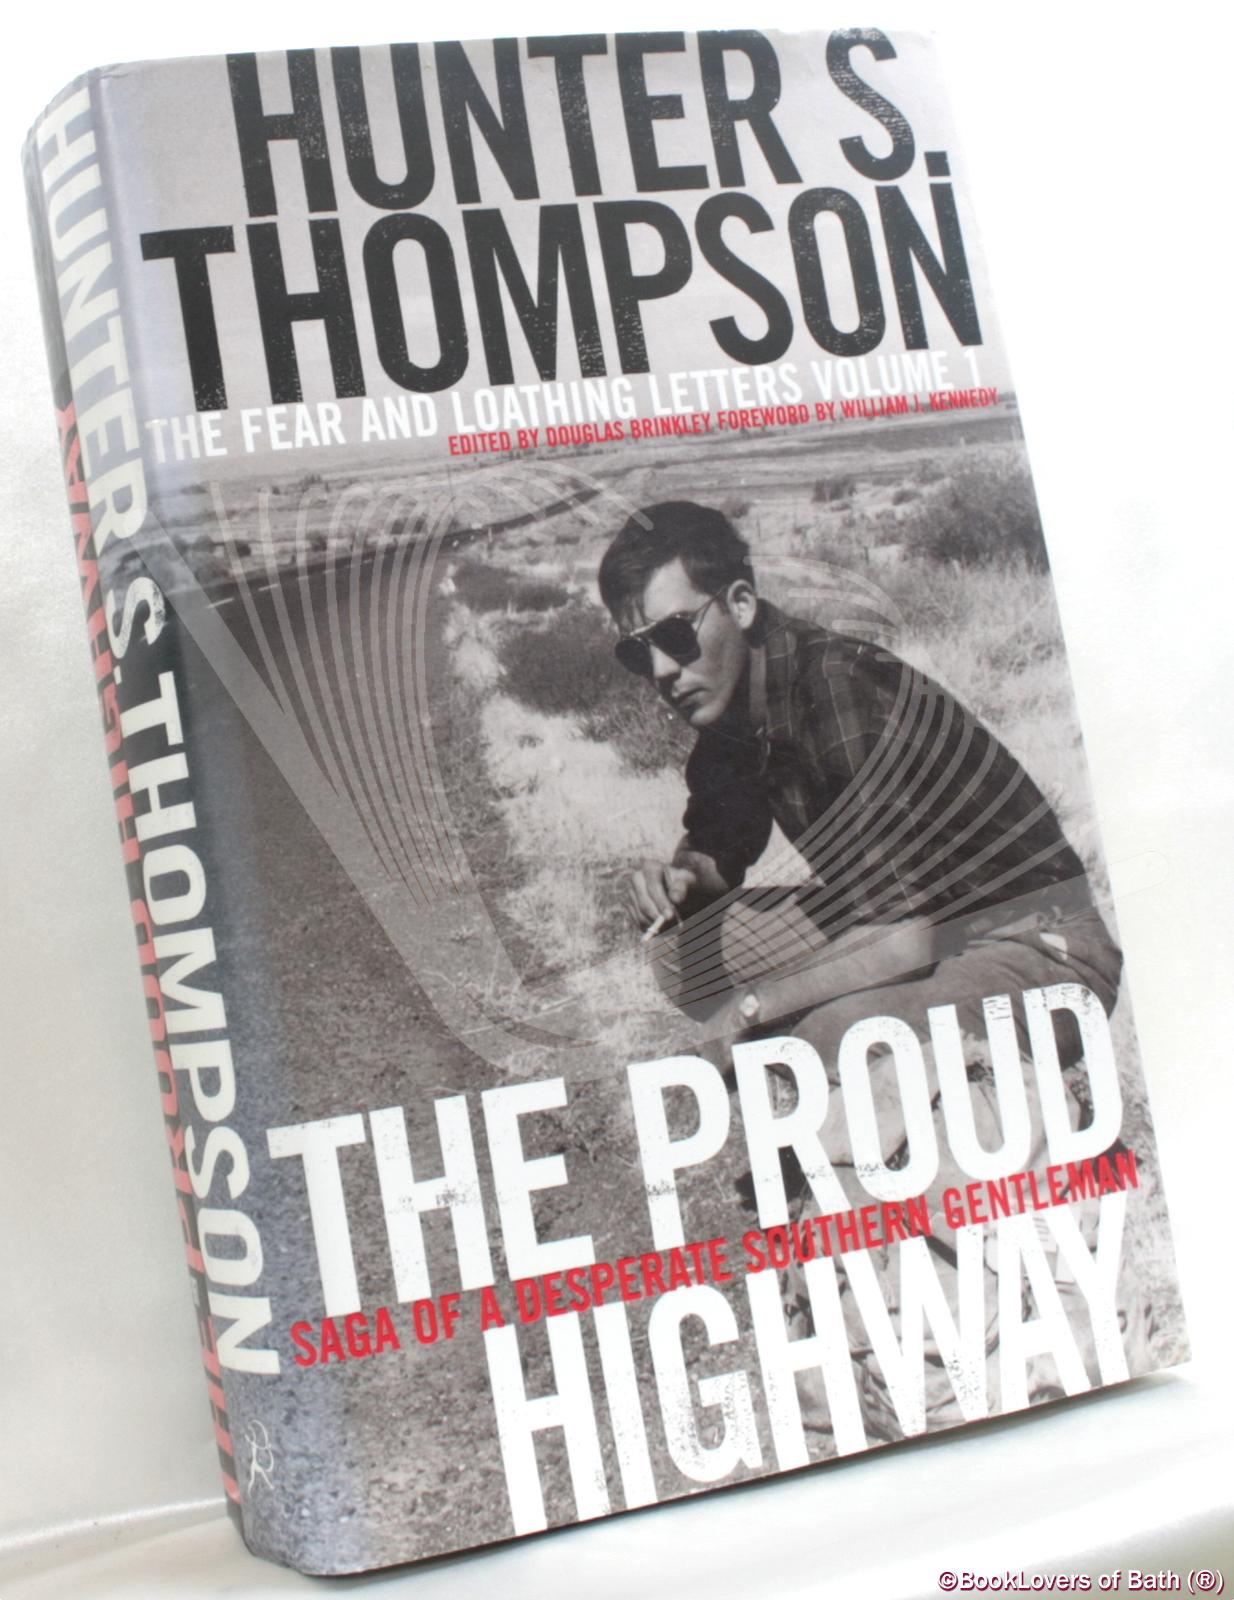 The Fear and Loathing Letters Volume 1: The Proud Highway Saga of a Desperate Southern Gentleman 1955-1967 - Hunter S. Thompson